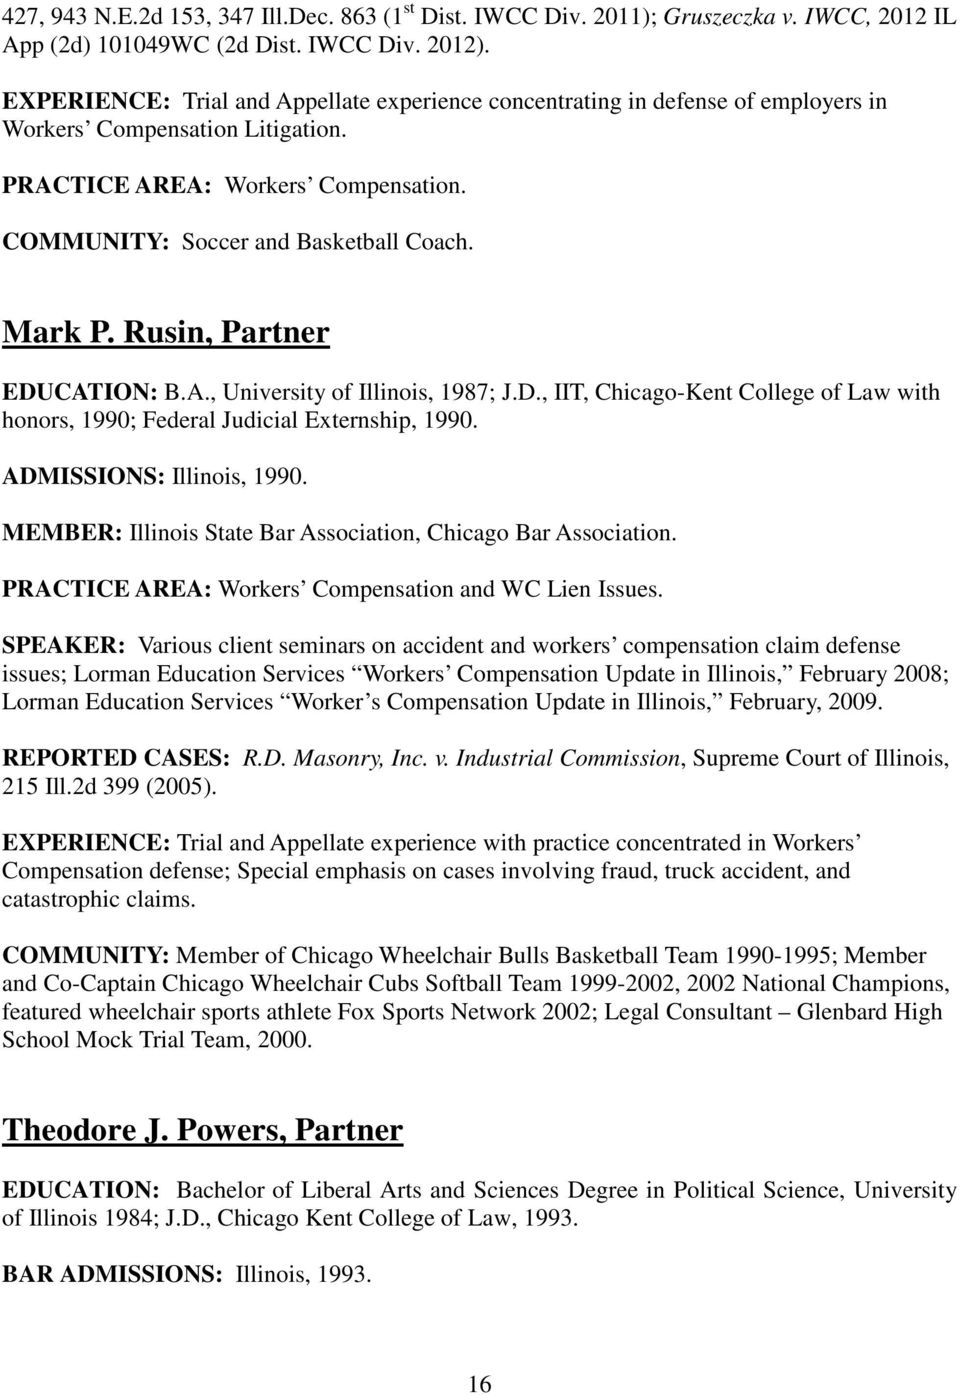 D., IIT, Chicago-Kent College of Law with honors, 1990; Federal Judicial Externship, 1990. ADMISSIONS: Illinois, 1990. MEMBER: Illinois State Bar Association, Chicago Bar Association.